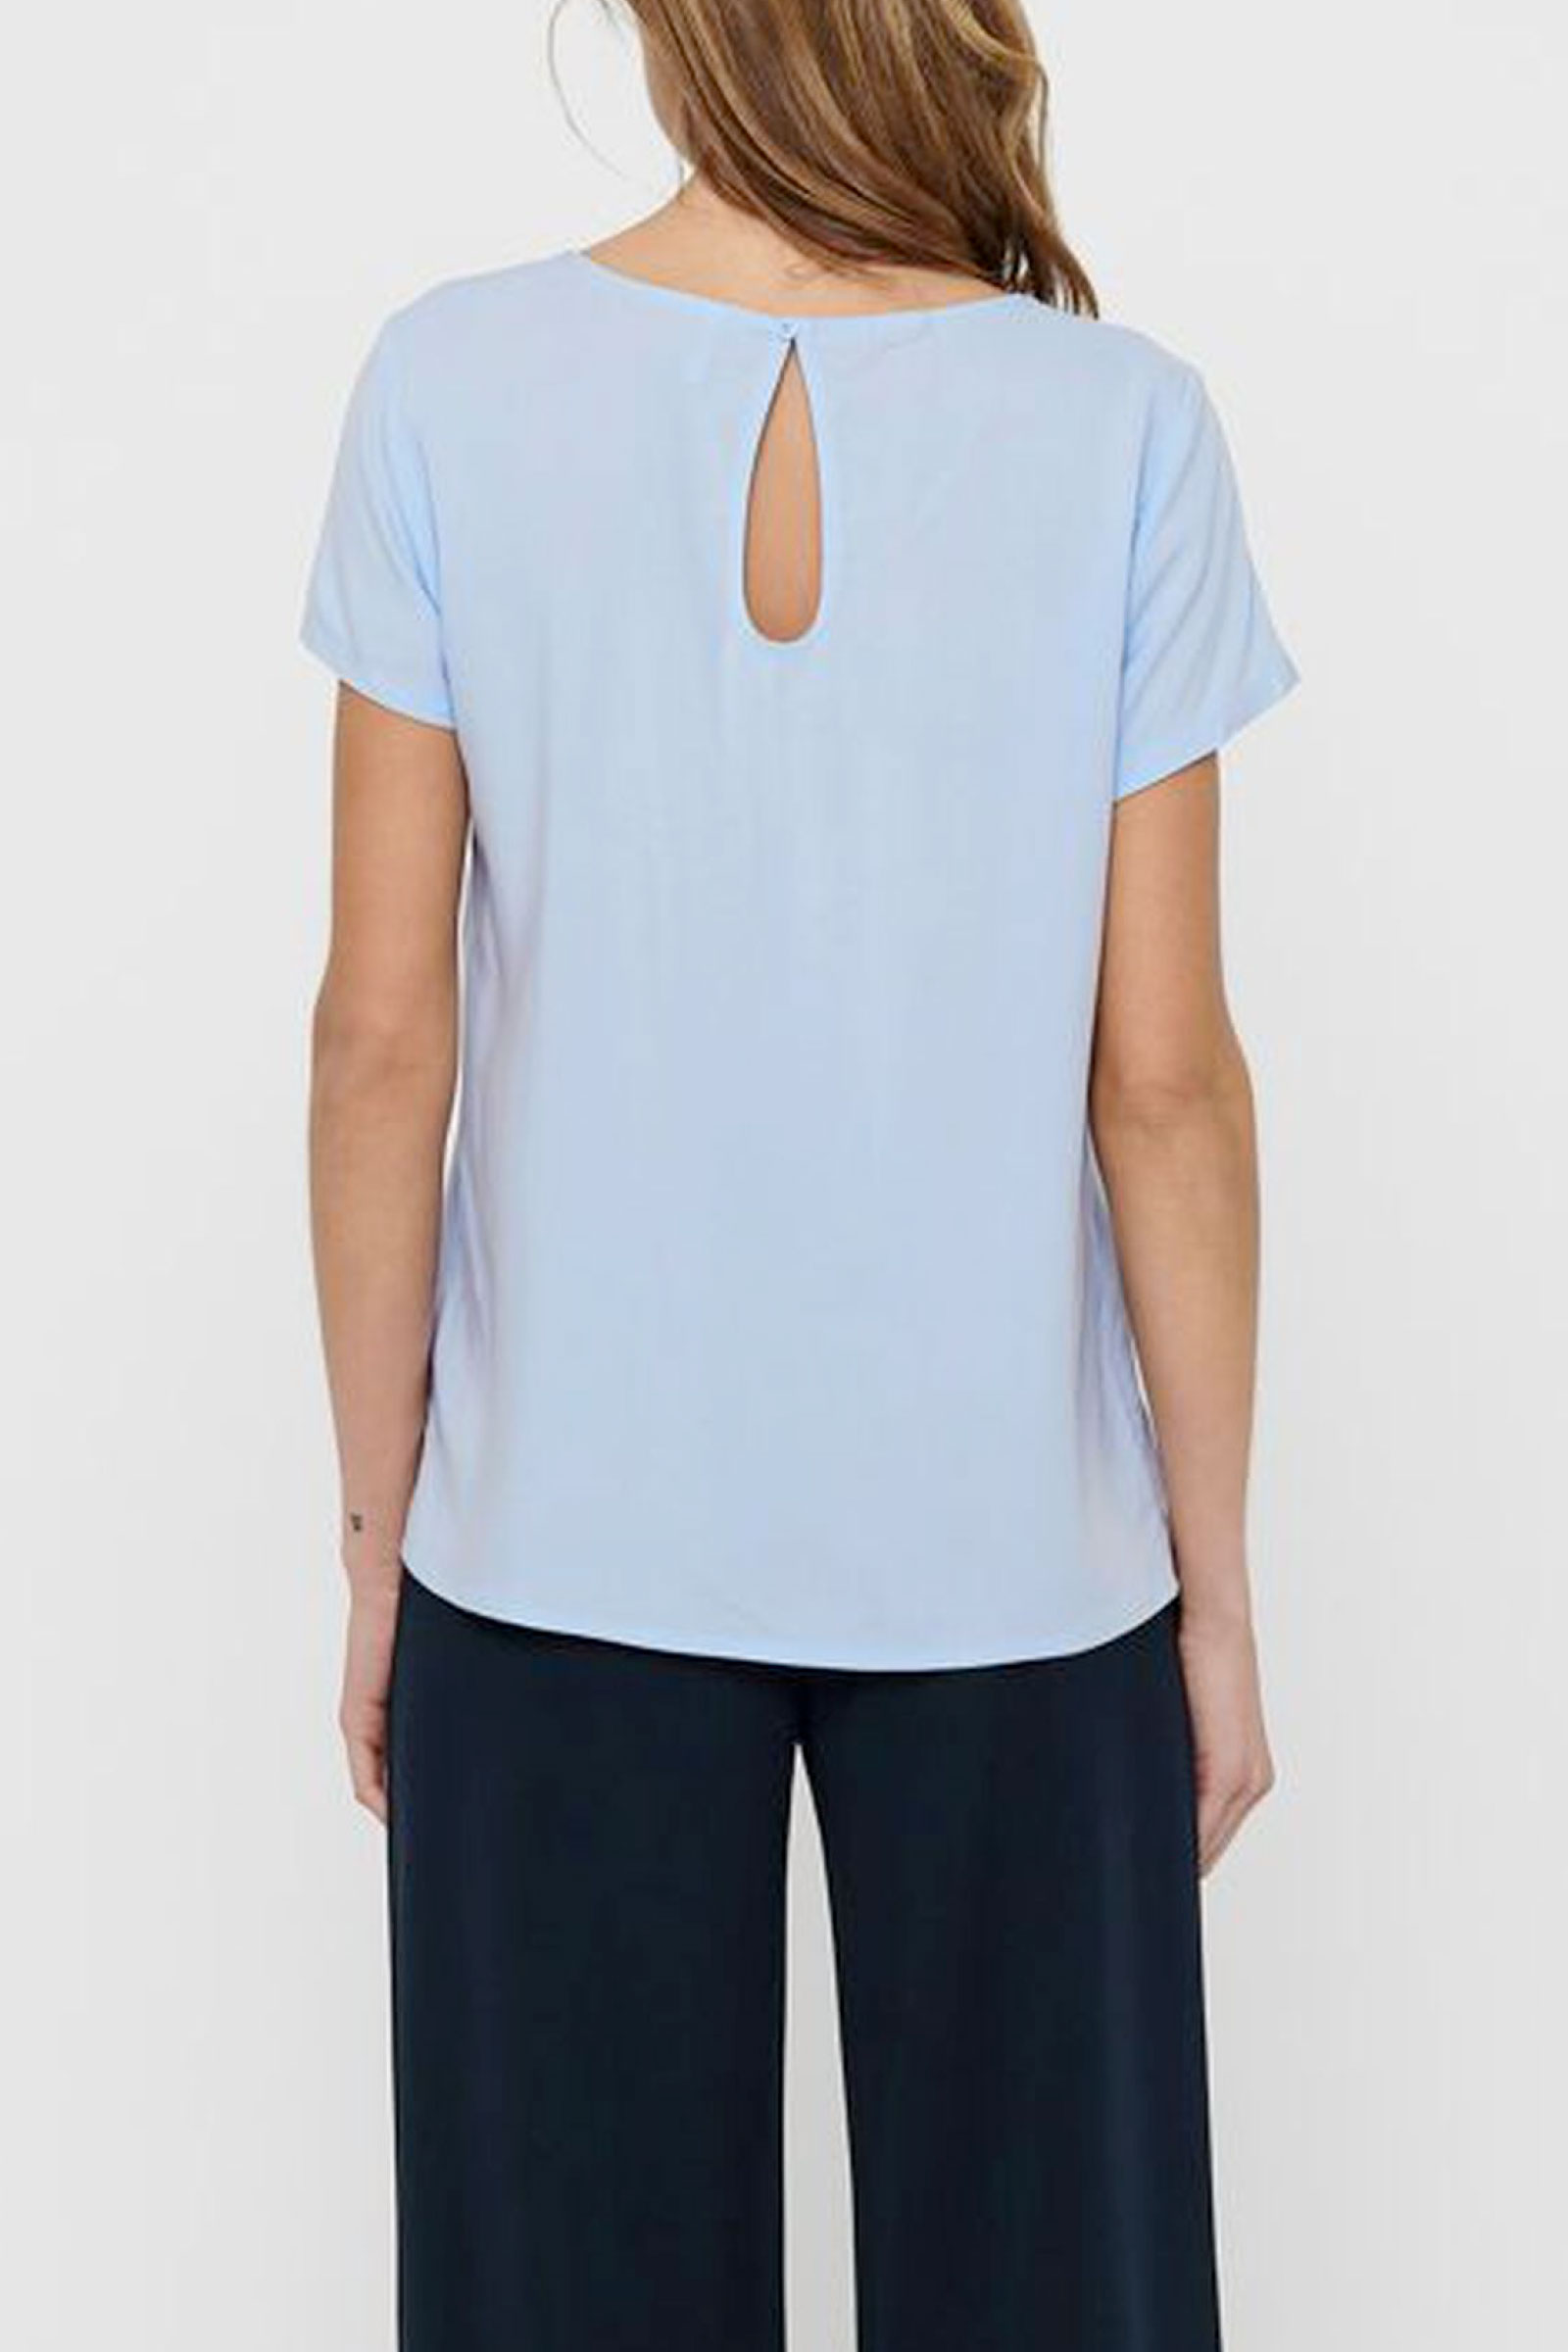 ONLY Woman T-Shirt ONLY | T-Shirt | 15197495CASHMERE BLUE